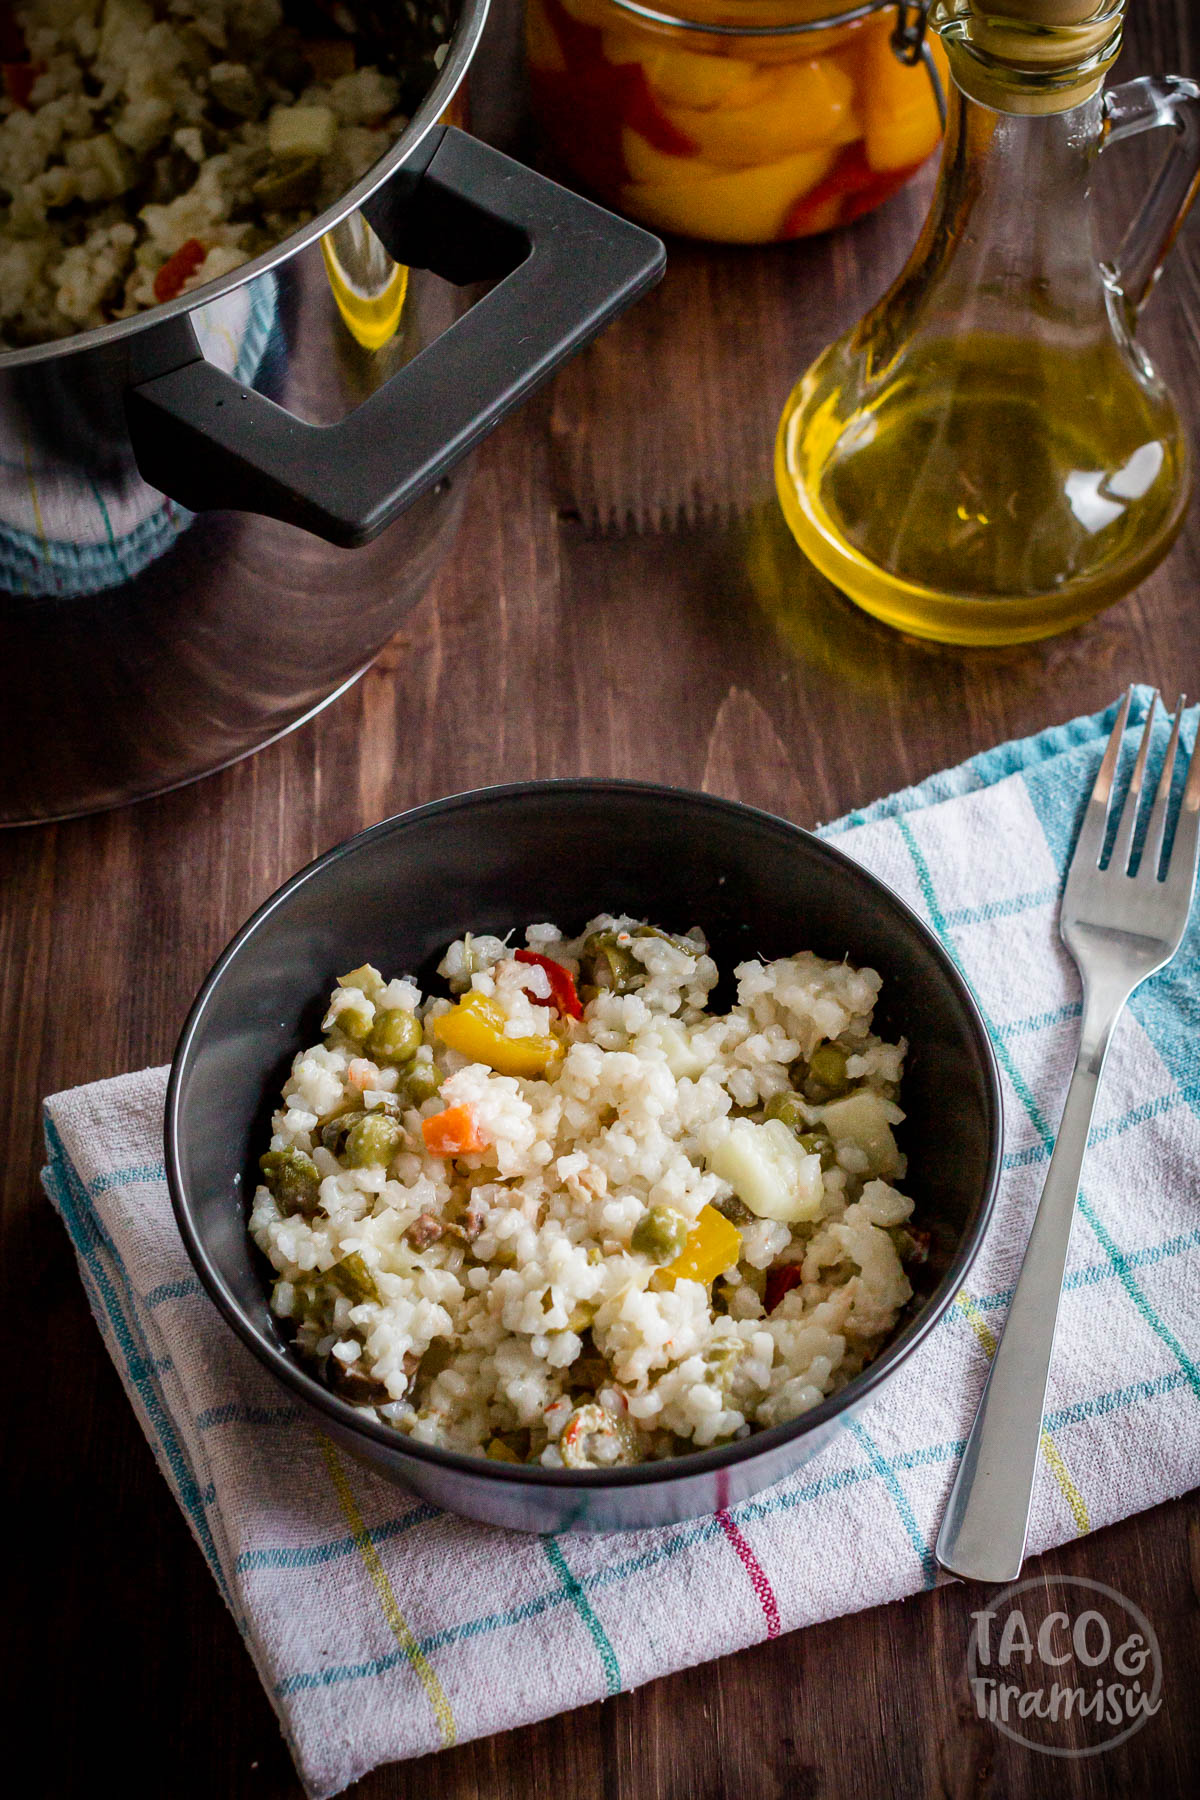 italian rice salad in a black bowl next to olive oil and pickled peppers